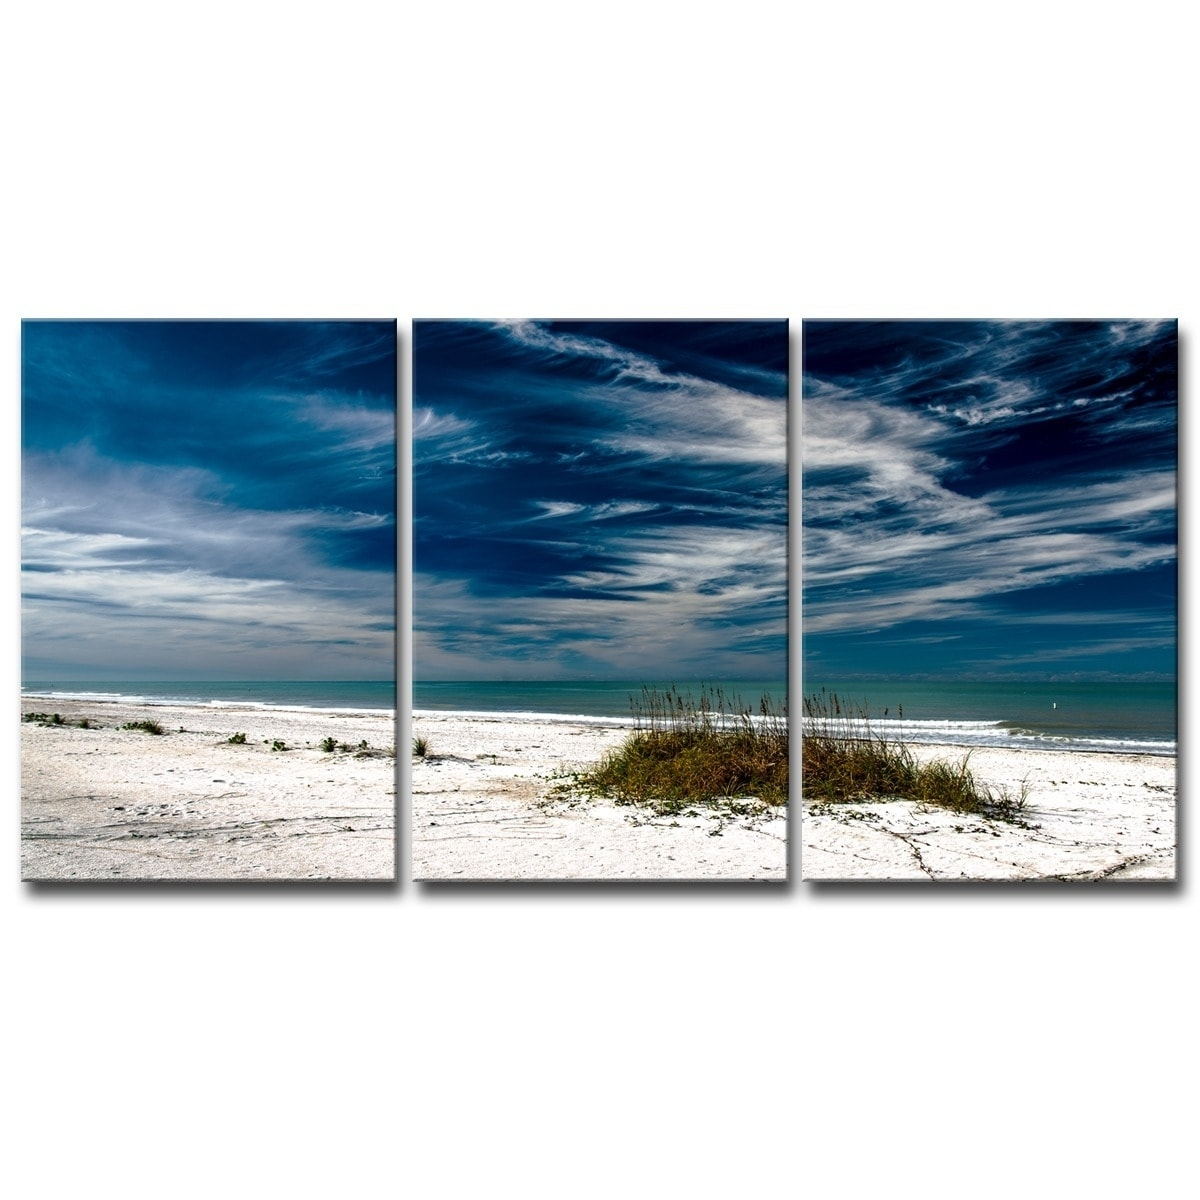 Bruce Bain 'silent Beach' 5 Piece Set Canvas Wall Art – Free Inside 2017 Beach Canvas Wall Art (View 15 of 15)